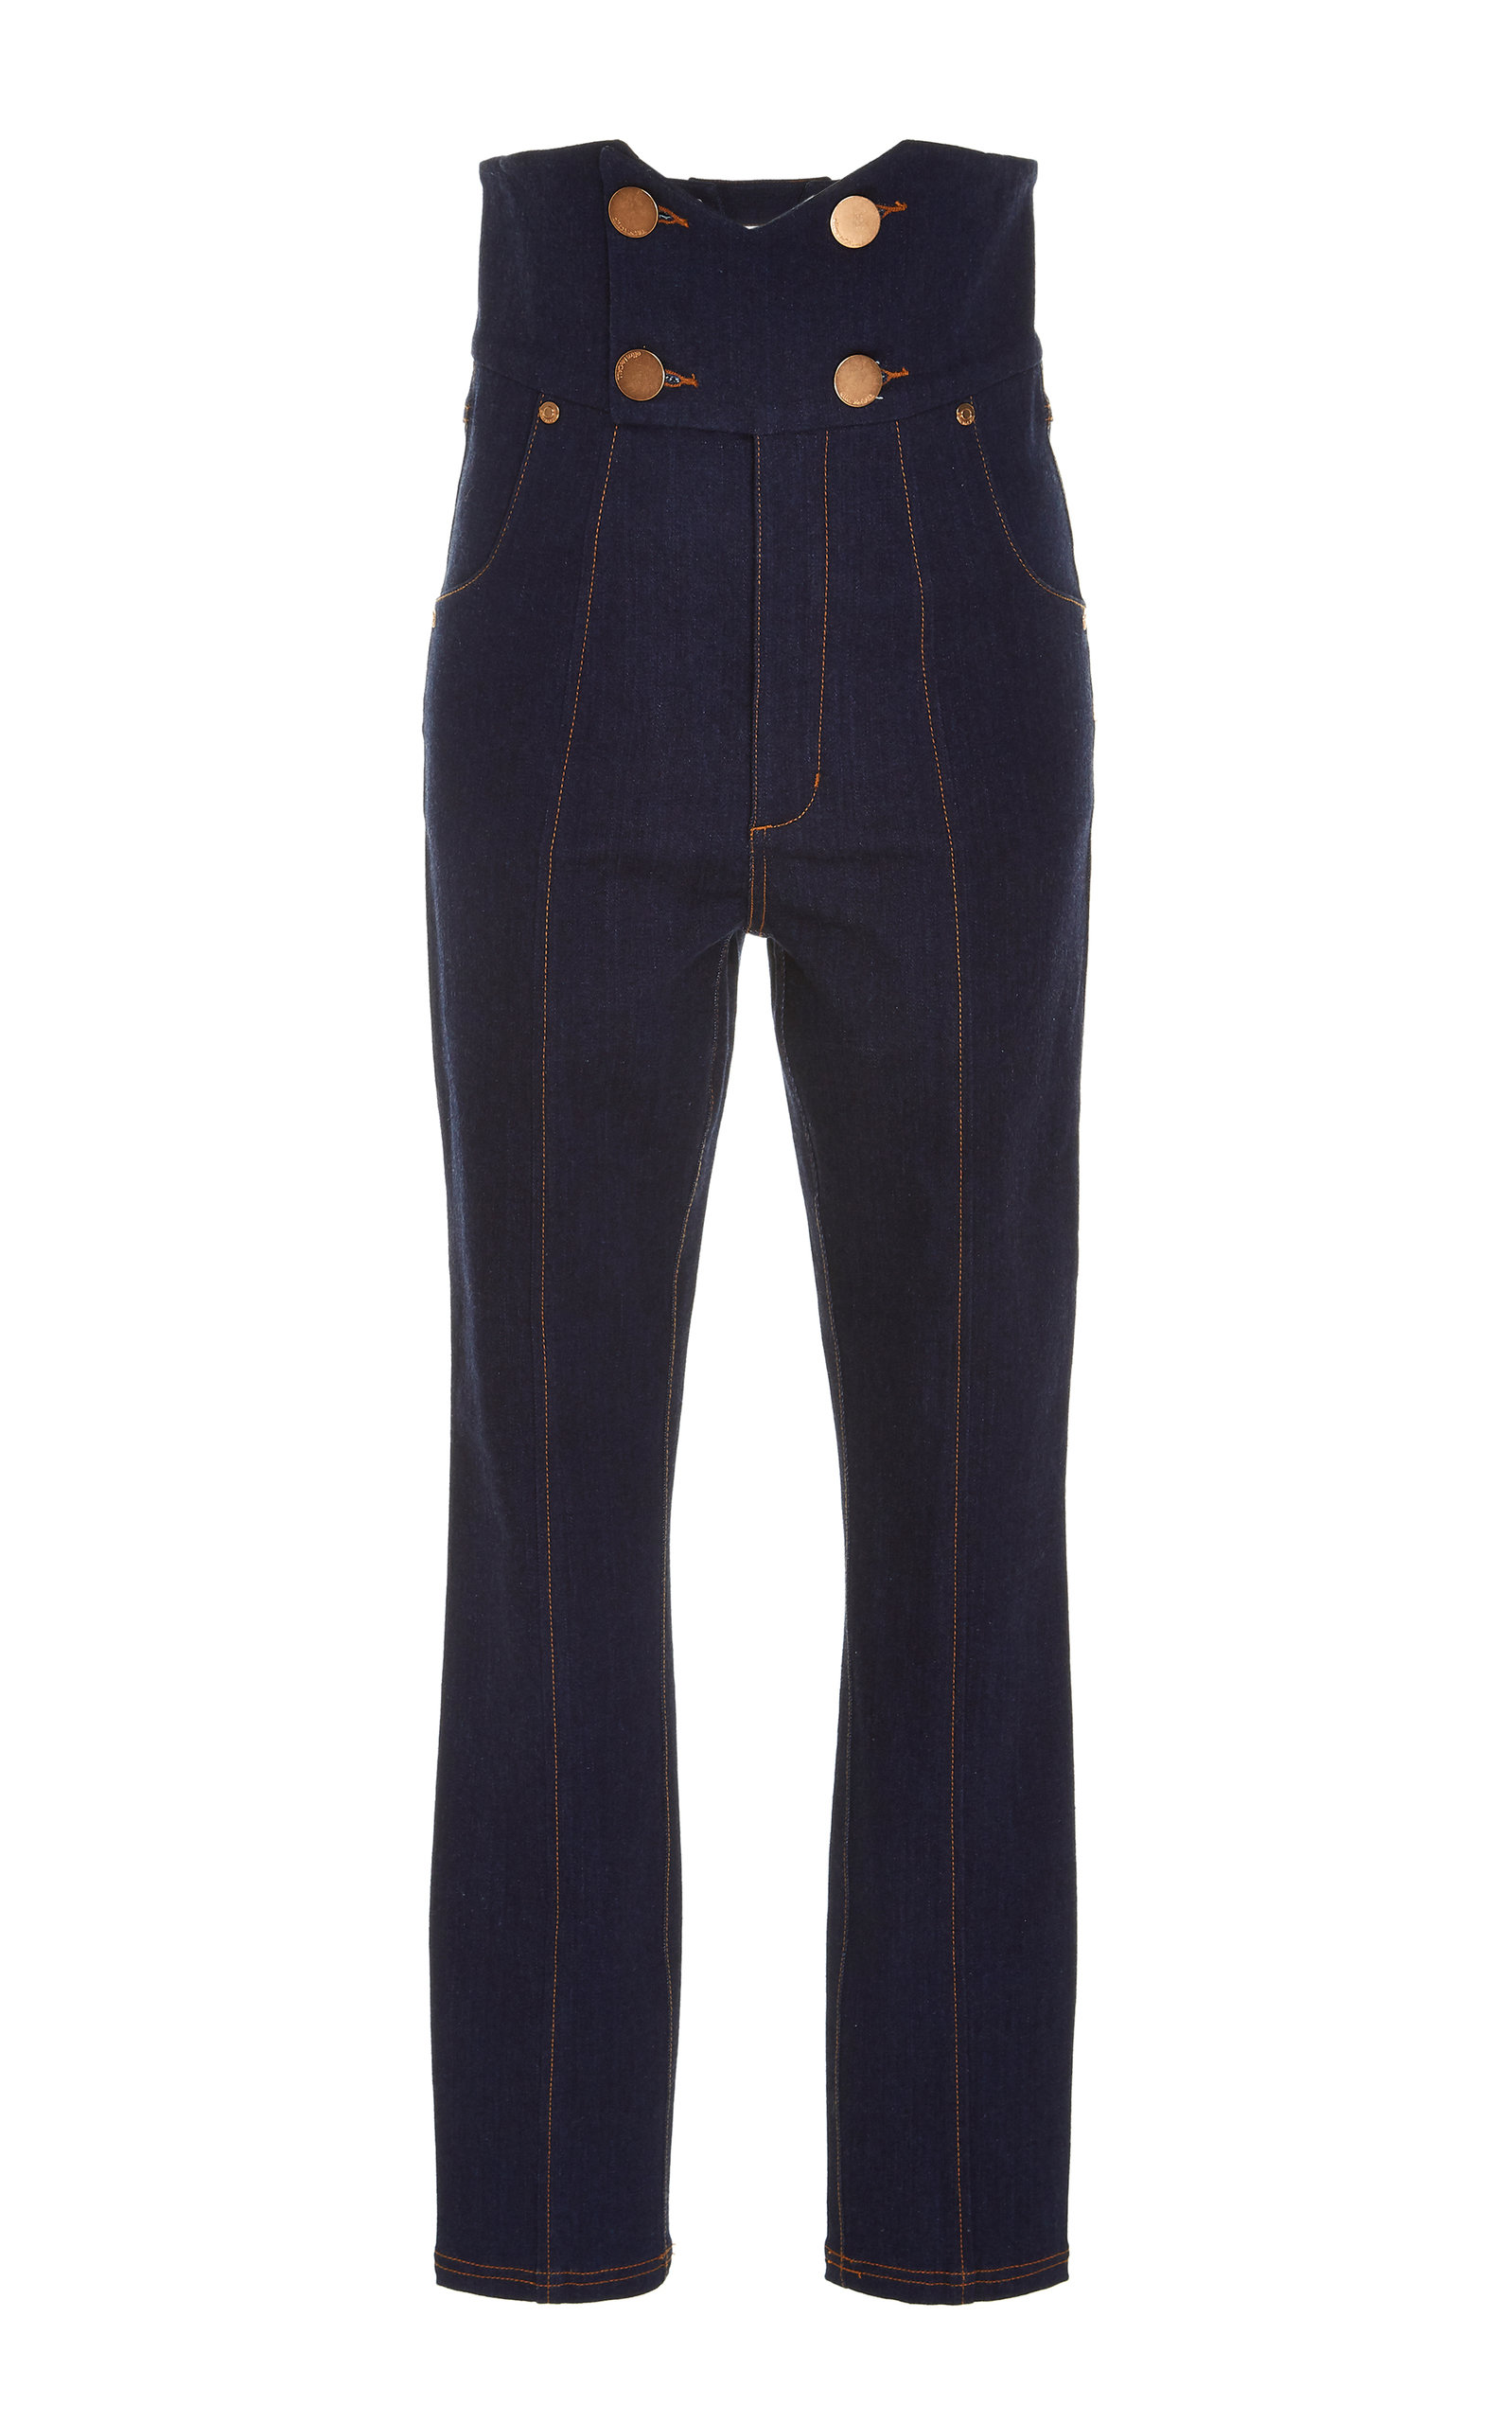 452747c114 Jadore Contrast Stitch High-Waisted Jeans by Alice McCall